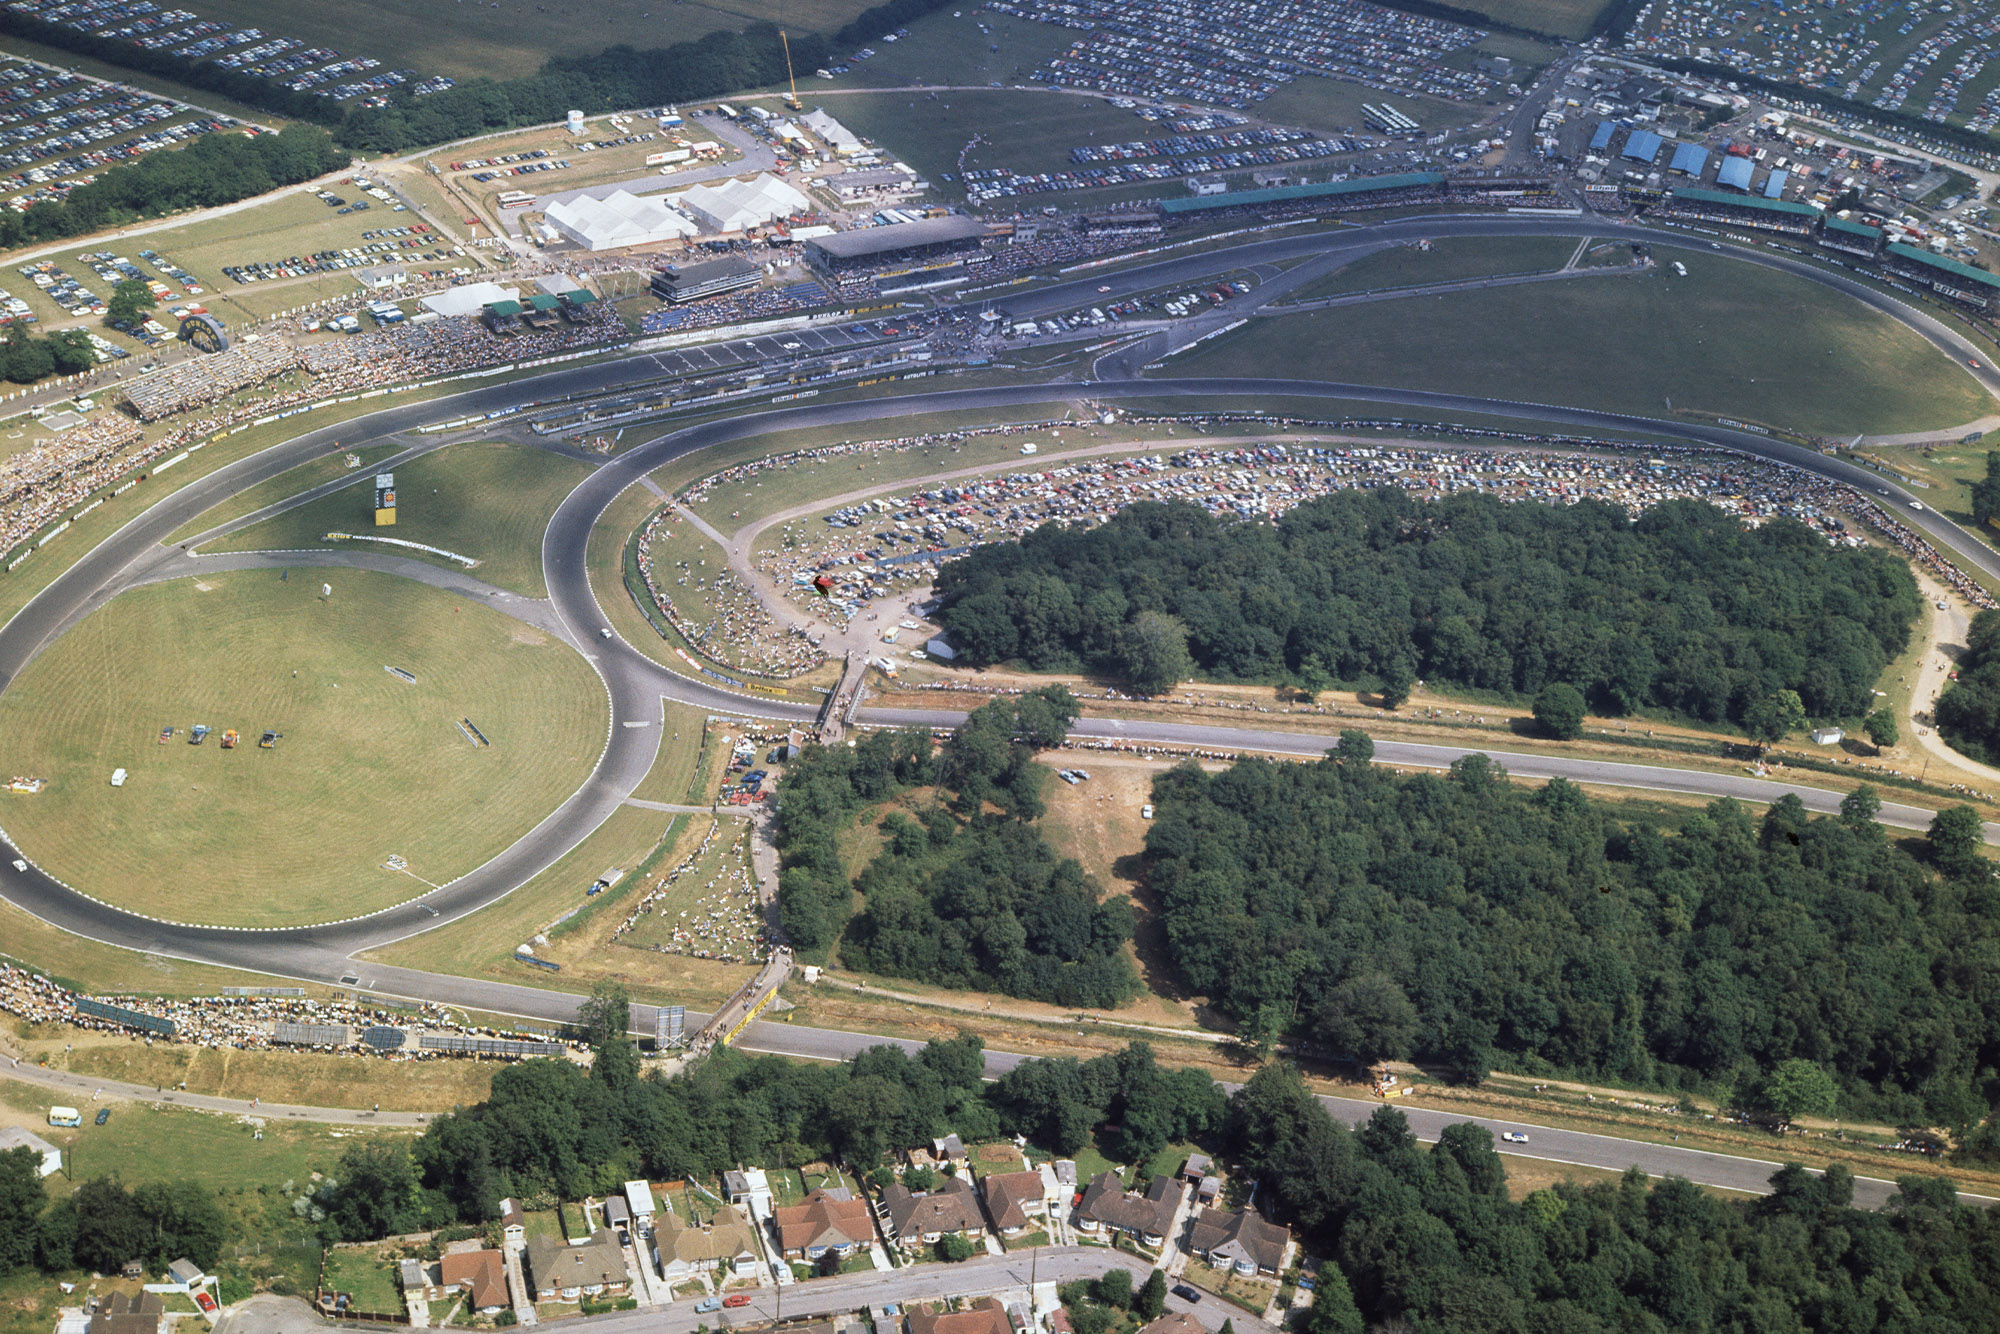 Overhead view of Brands Hatch at the 1970 F1 British Grand Prix